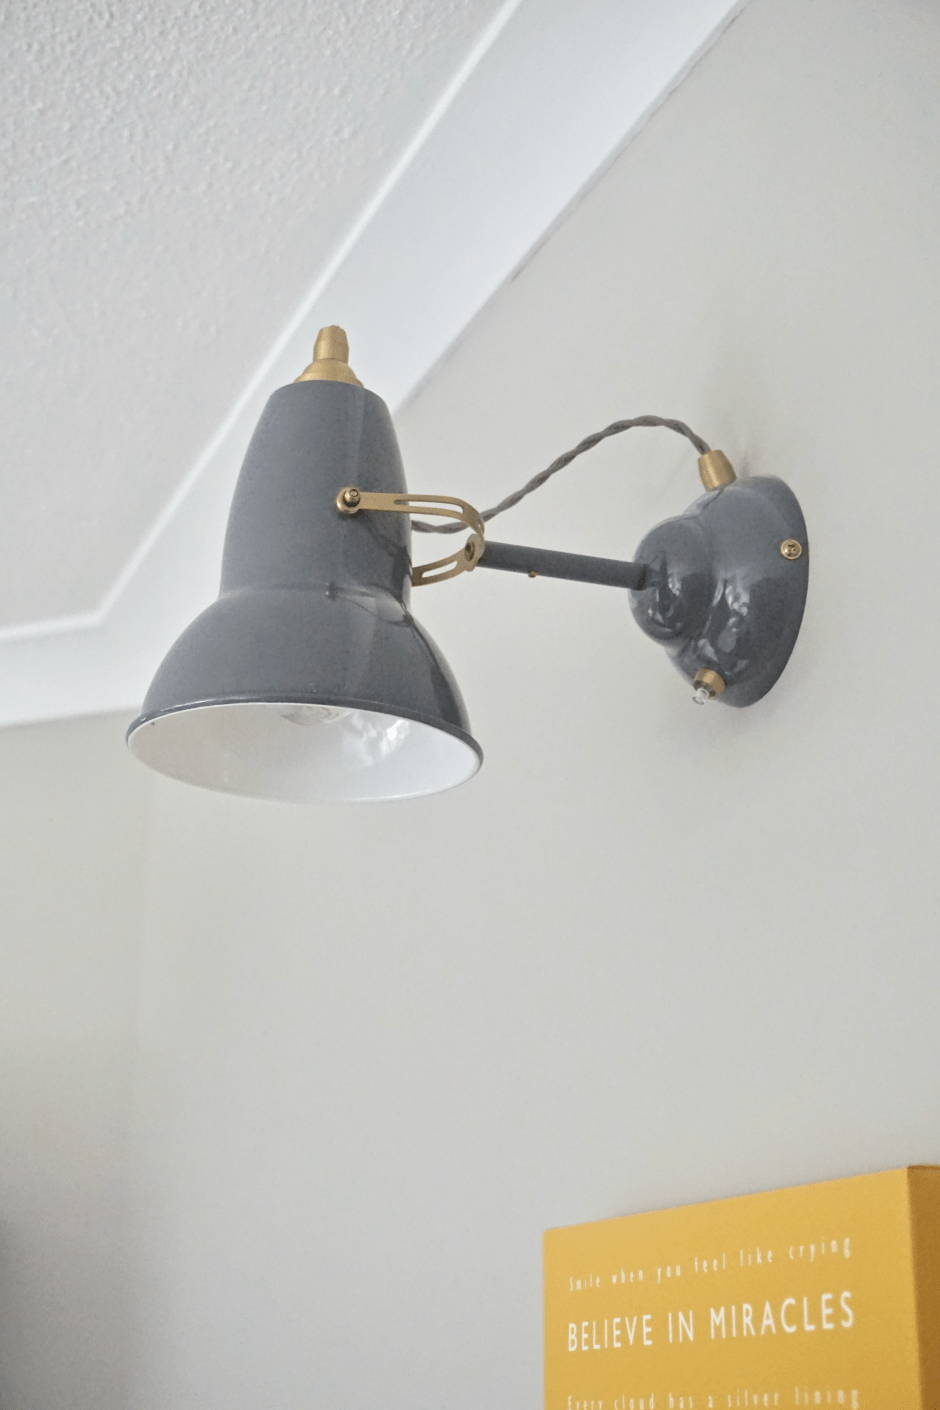 Anglepoise Original 1227 Brass Wall Light available from Inspyer Lighting